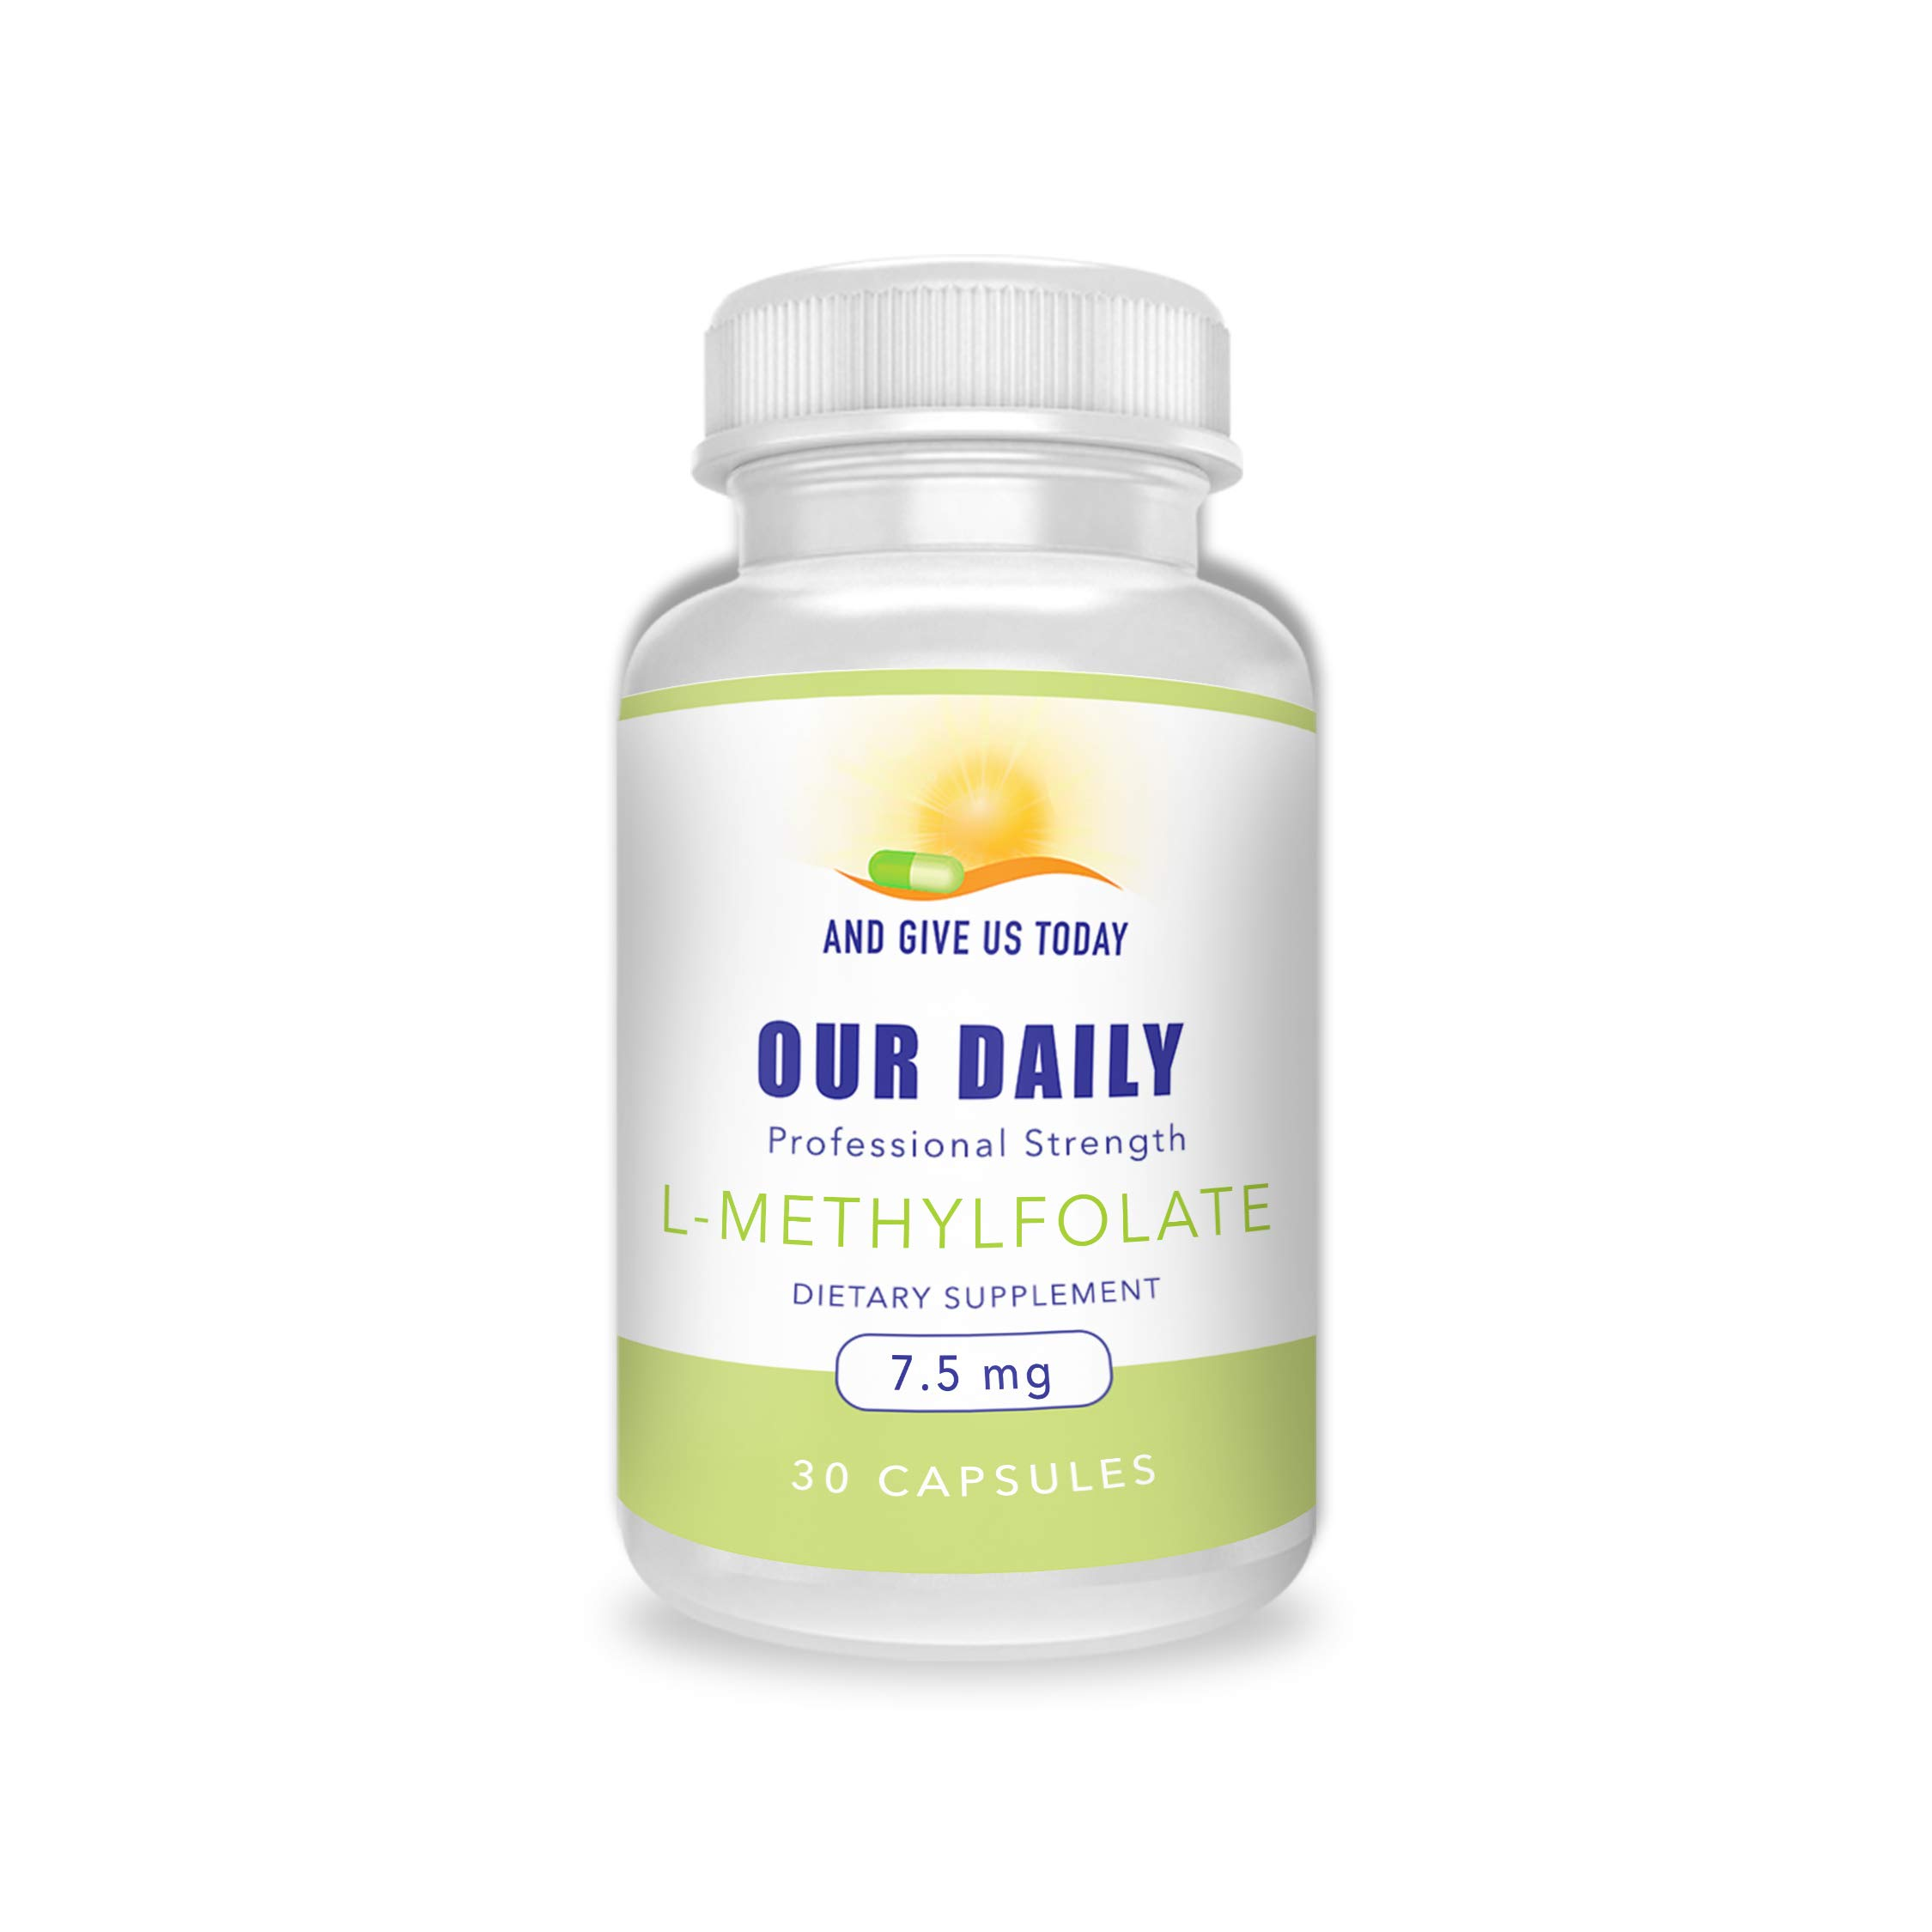 Our Daily Vites L-Methylfolate 7.5 mg / 7500 mcg Maximum Strength Active Folate, 5-MTHF, Filler Free, Gluten Free, Non-GMO, Vegetarian Capsules 30 Count (1 Month Supply)